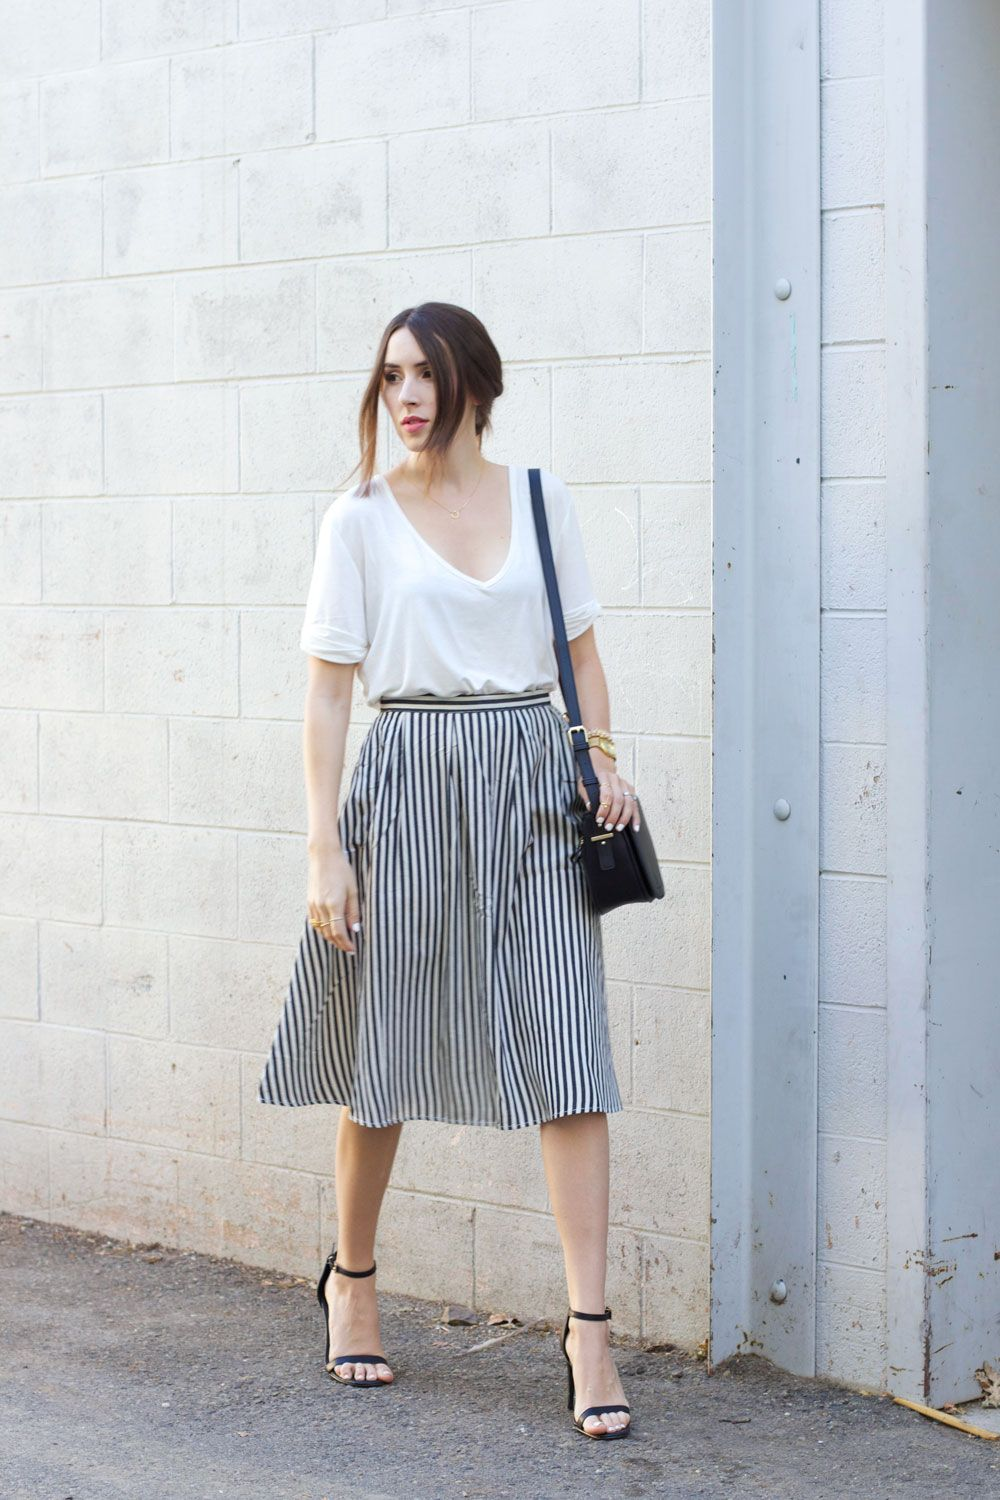 STRIPED SKIRT - Elements of Ellis  Skirt and sneakers, Striped